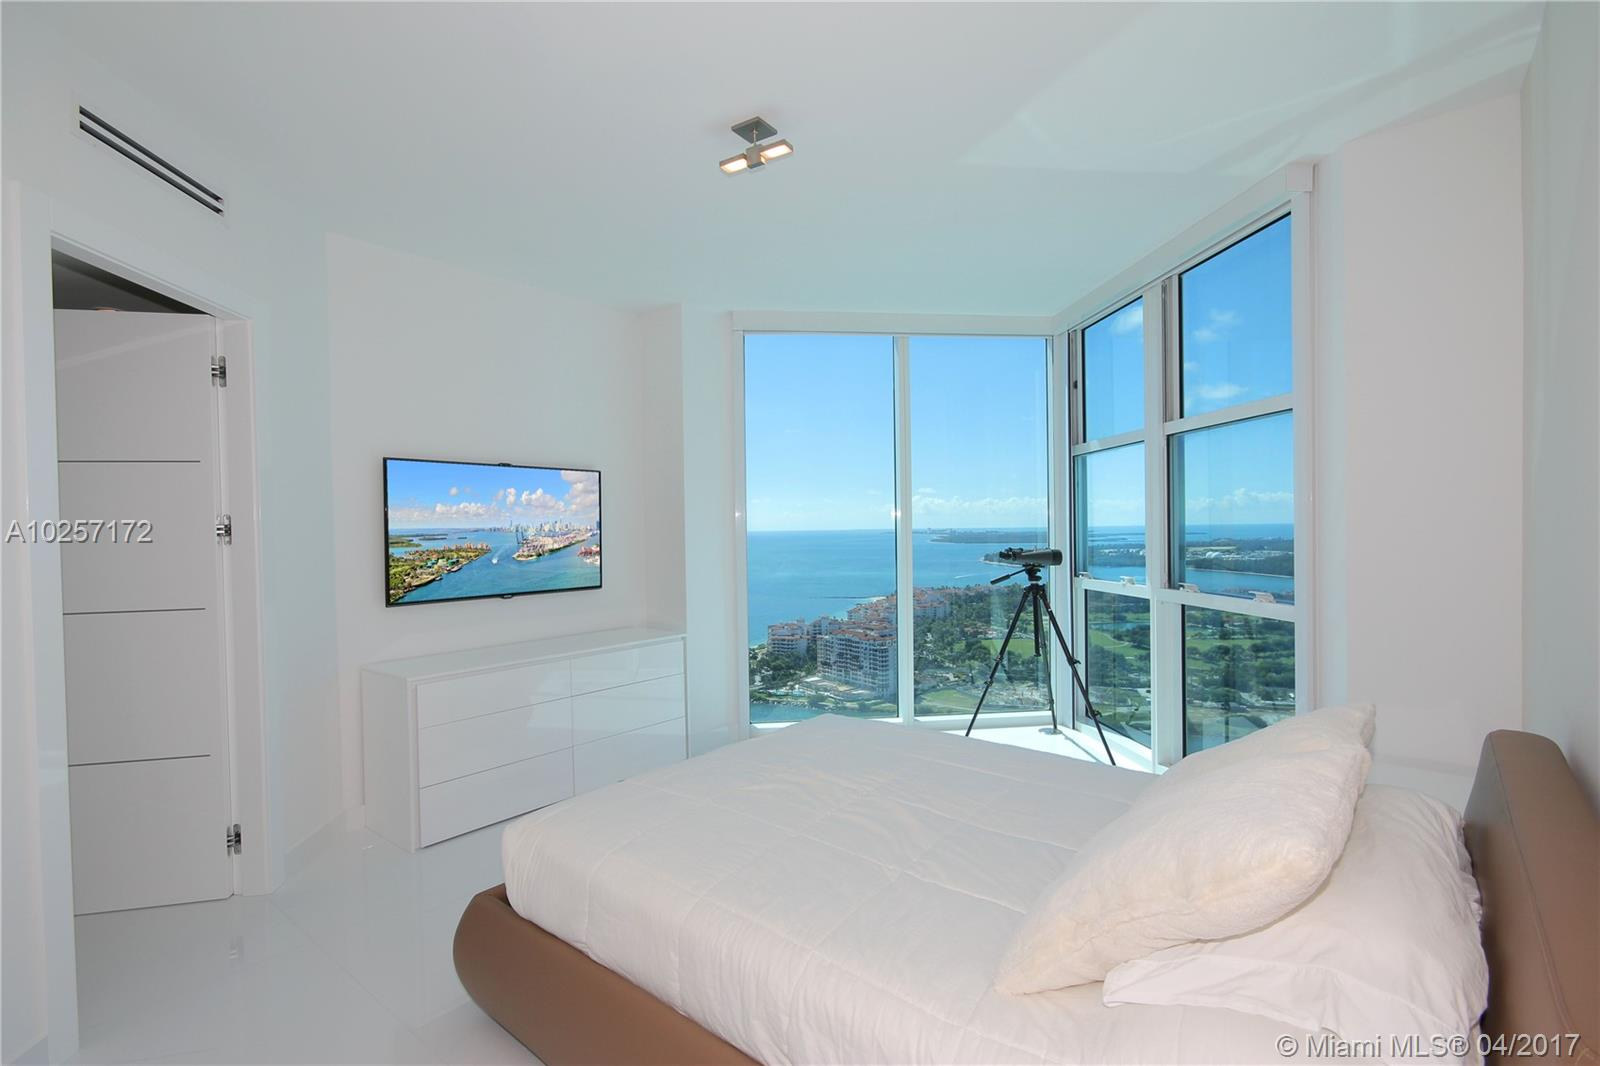 300 Pointe dr-LPH2 miami-beach--fl-33139-a10257172-Pic21